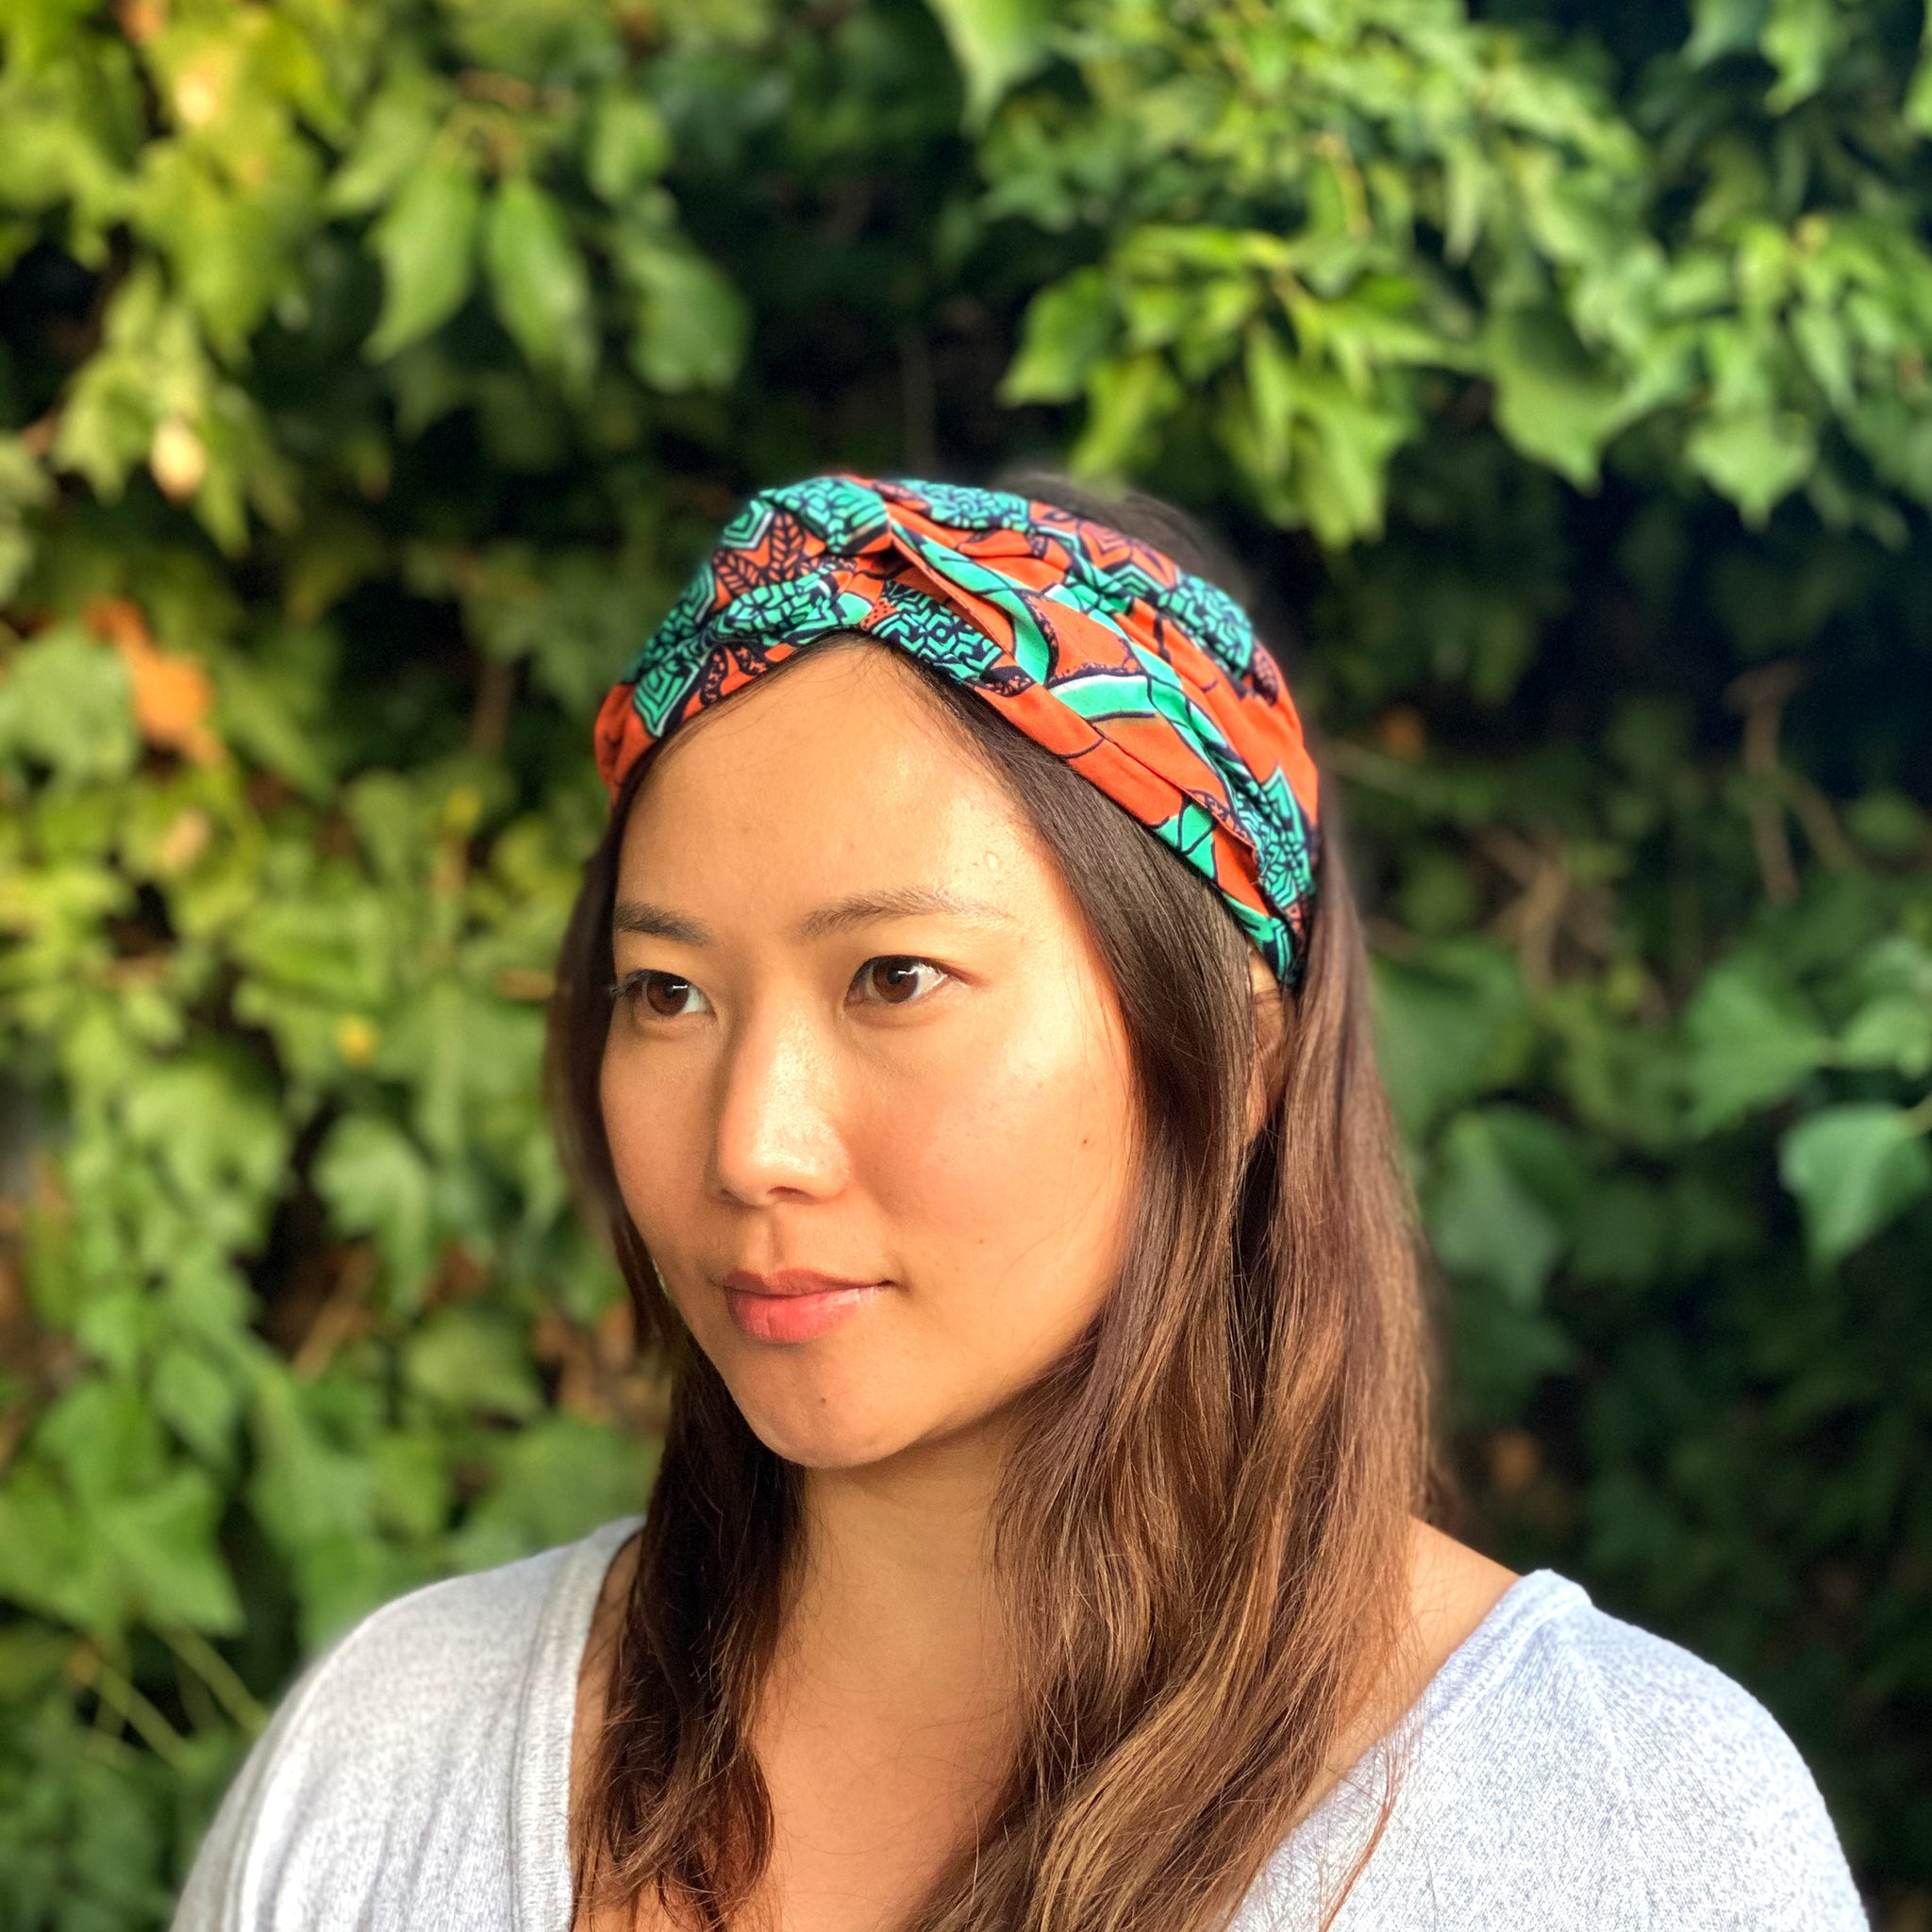 TURBAN HEADBAND [5 colors]